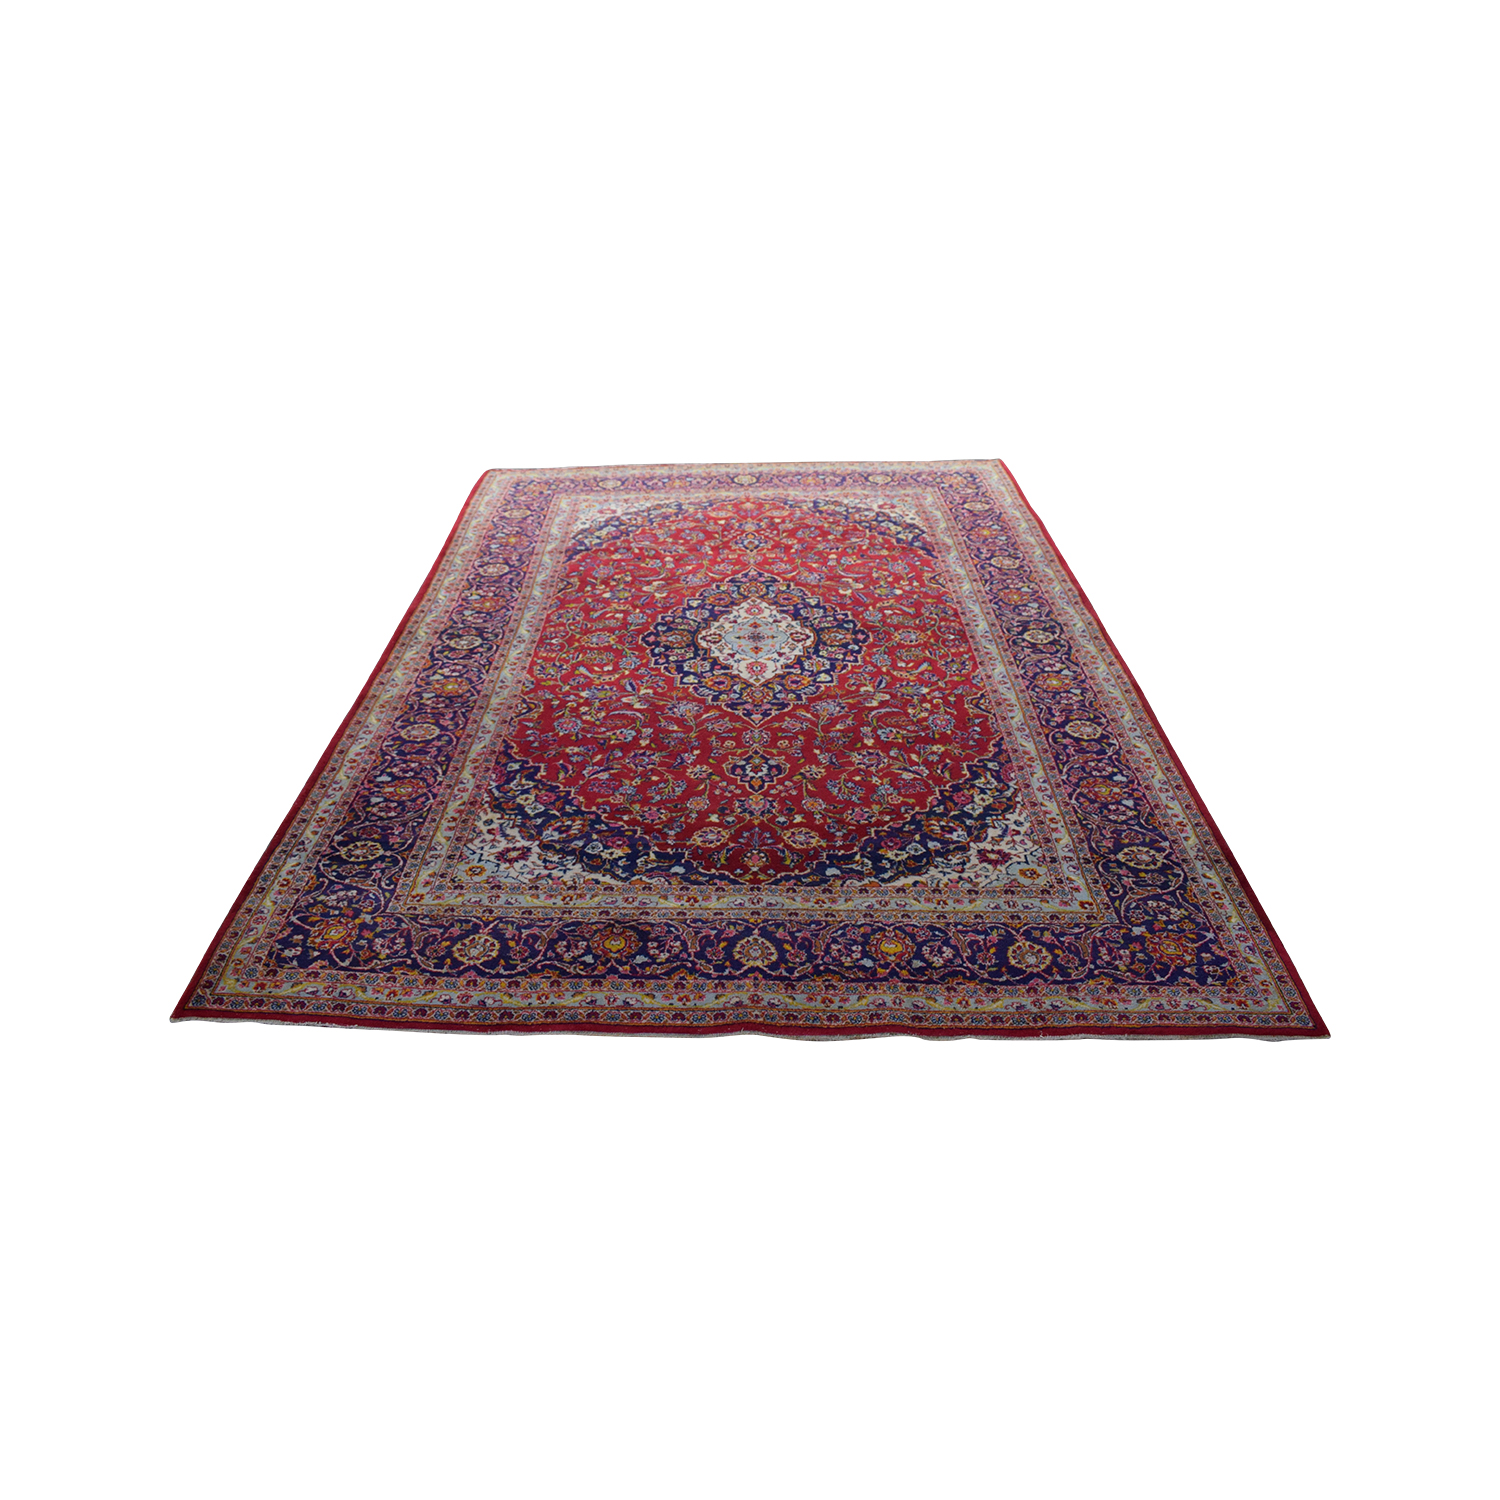 Persian Area Rug price